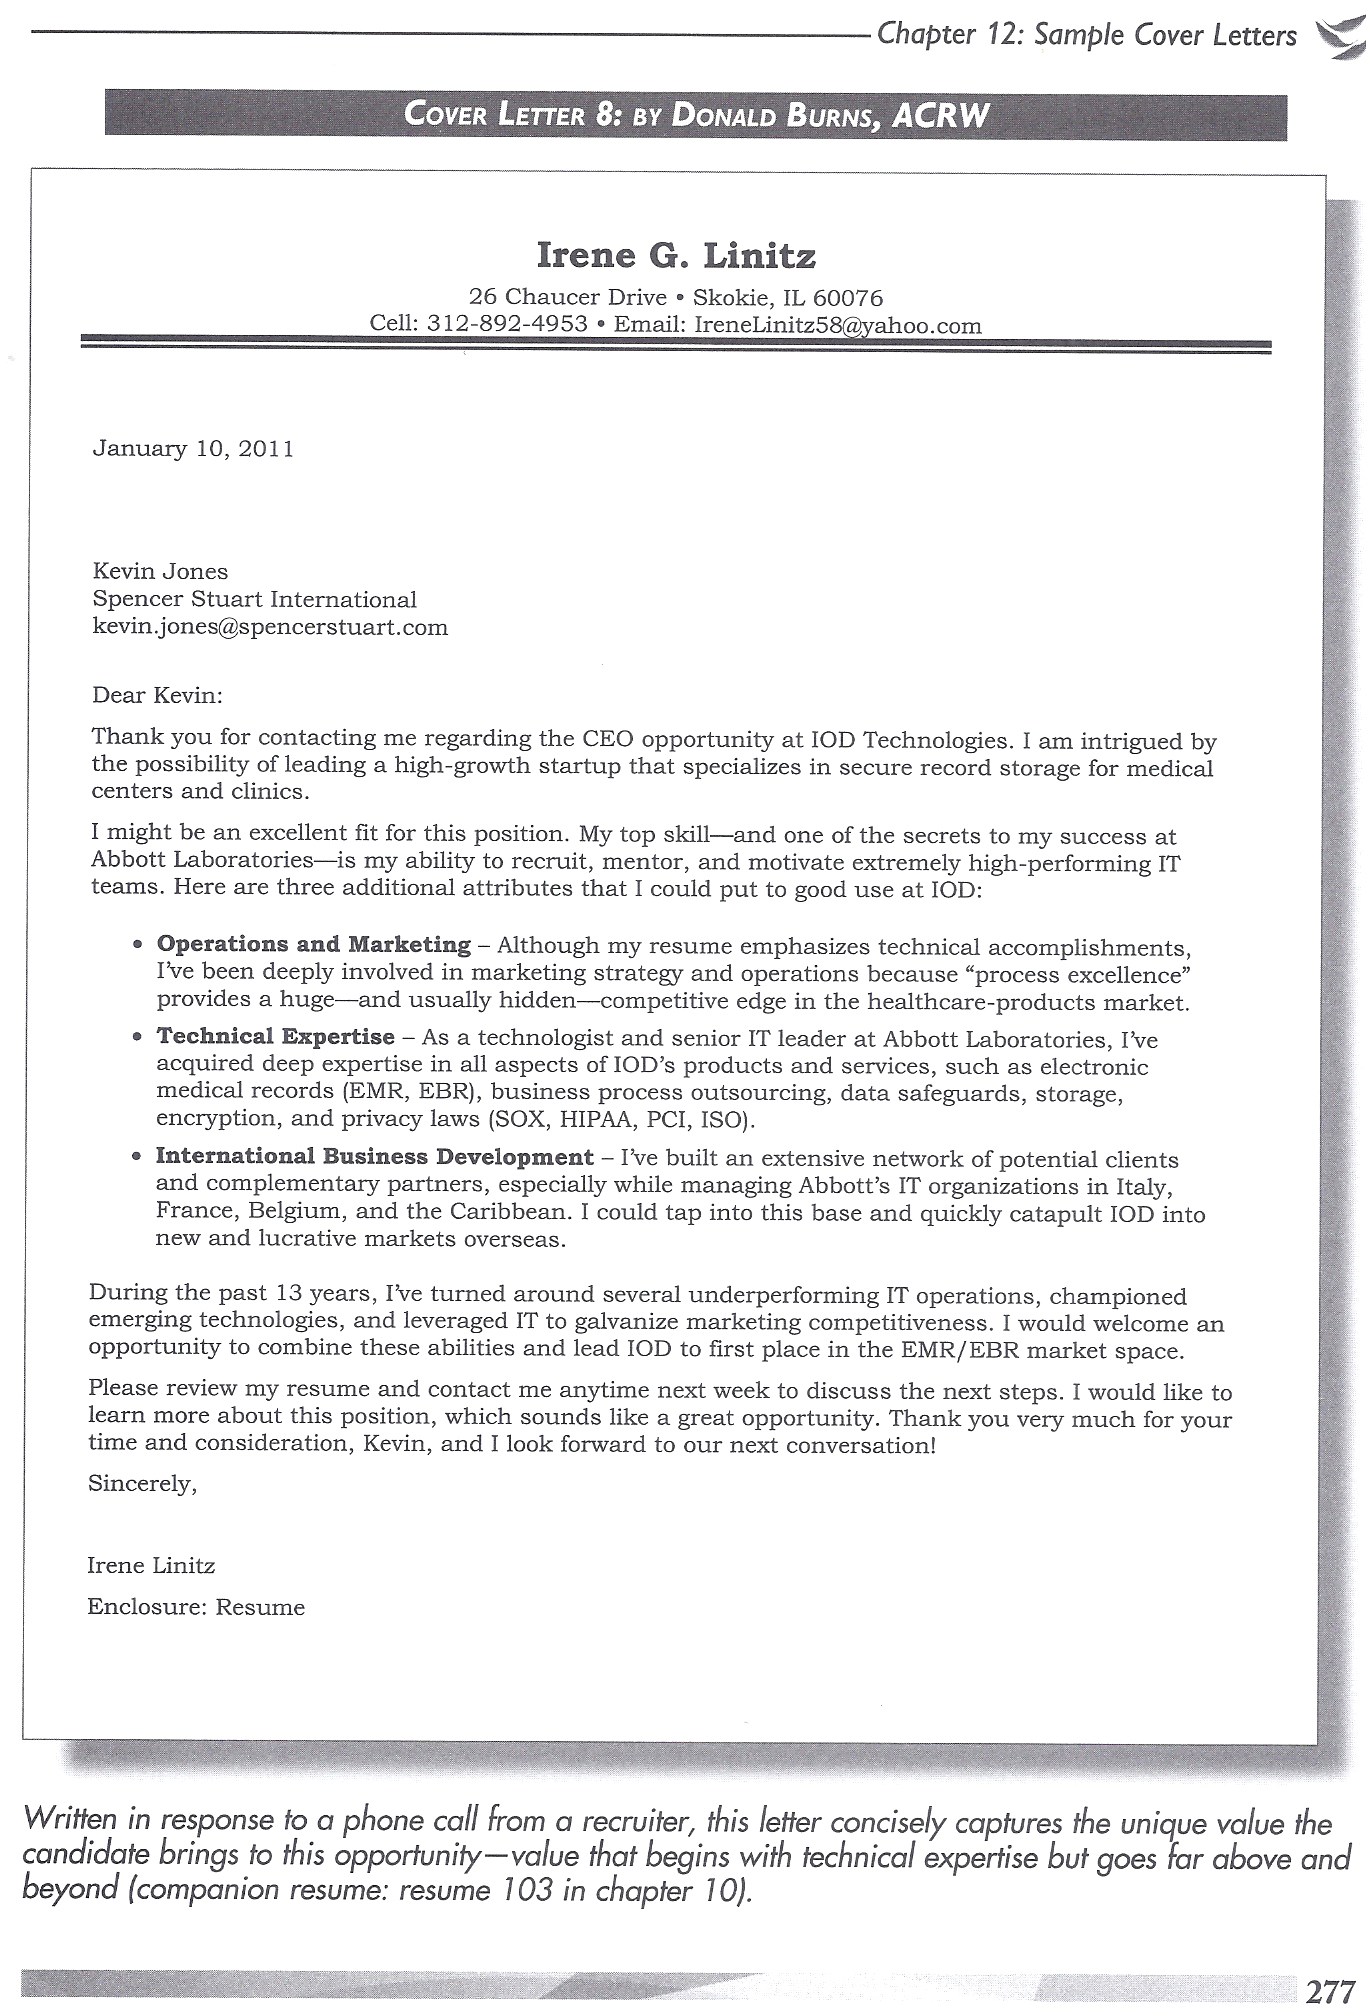 sample of an engineering resume cover letter coverletter